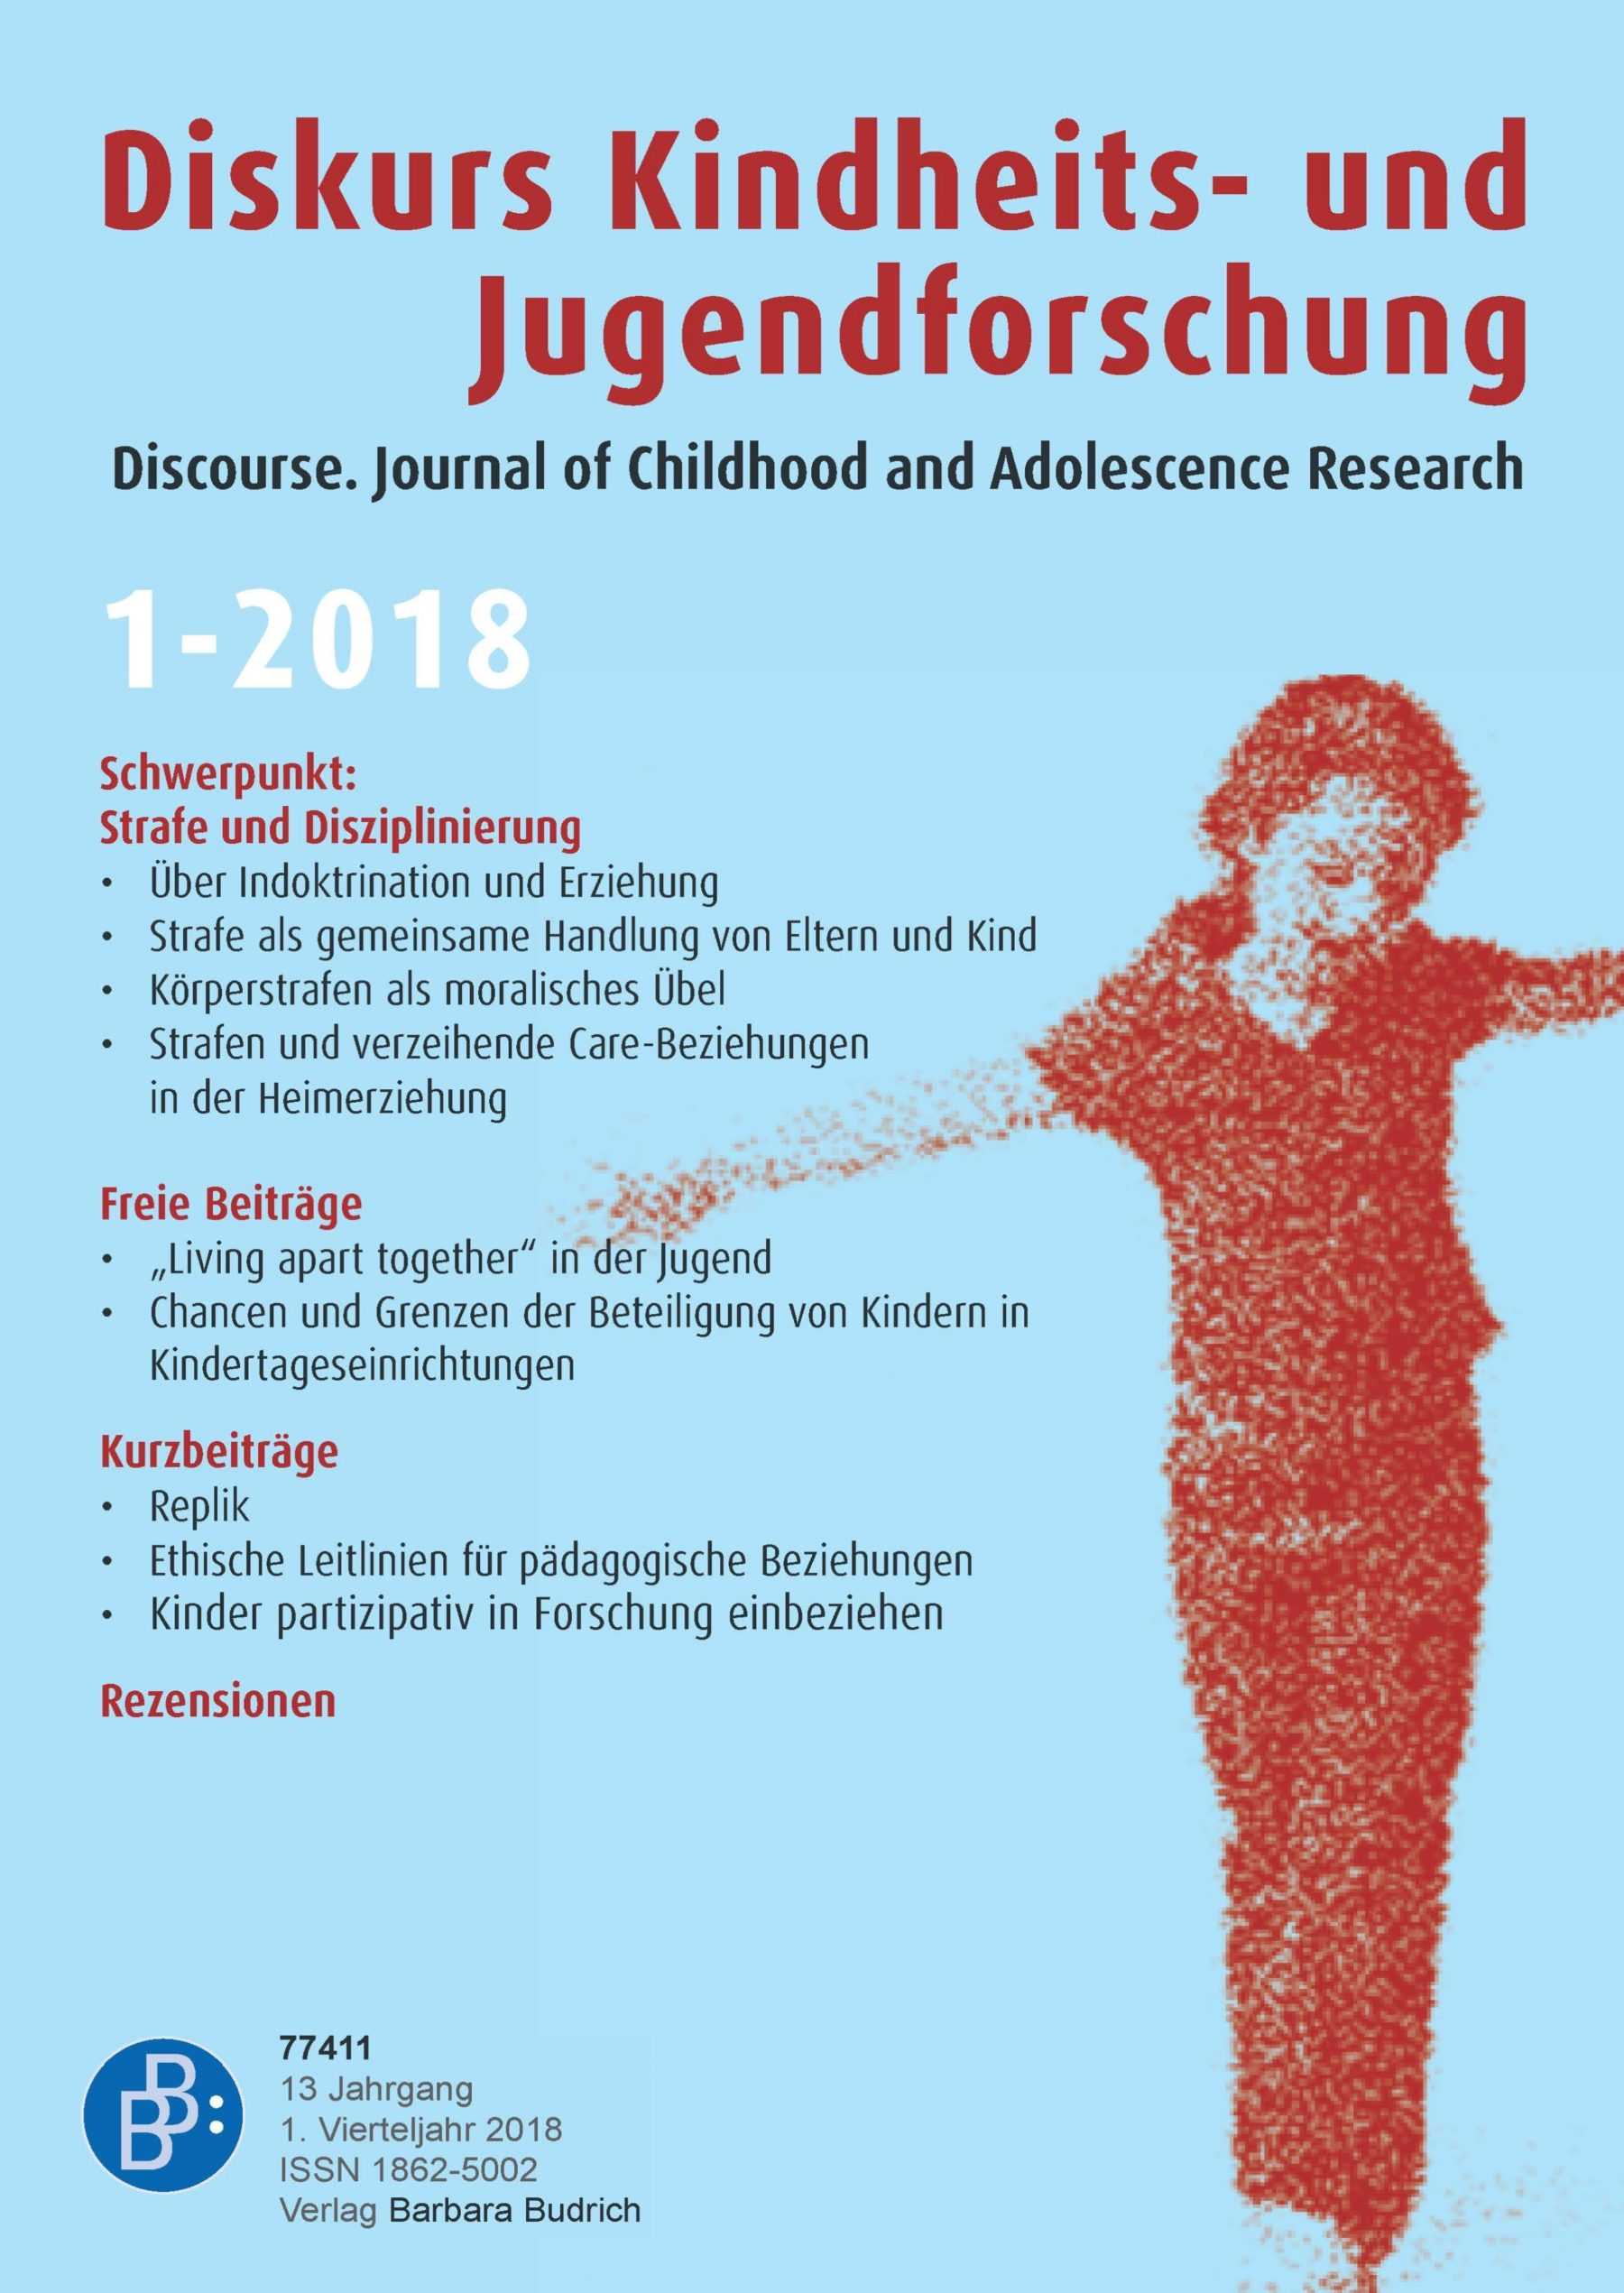 Diskurs Kindheits- und Jugendforschung / Discourse. Journal of Childhood and Adolescence Research 1-2018: Strafe und Disziplinierung